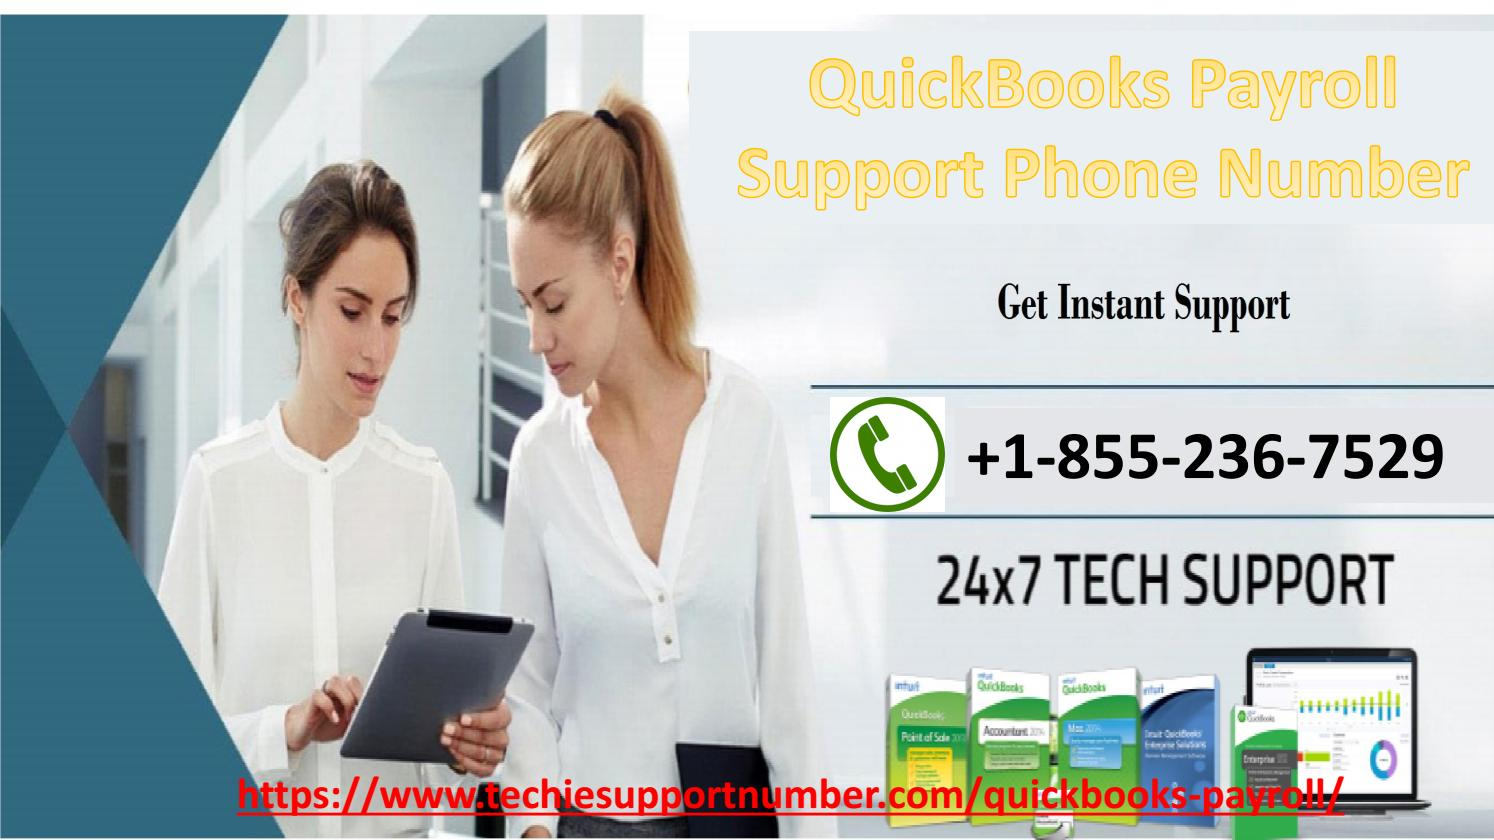 Get in touch with our team at QuickBooks Payroll Support